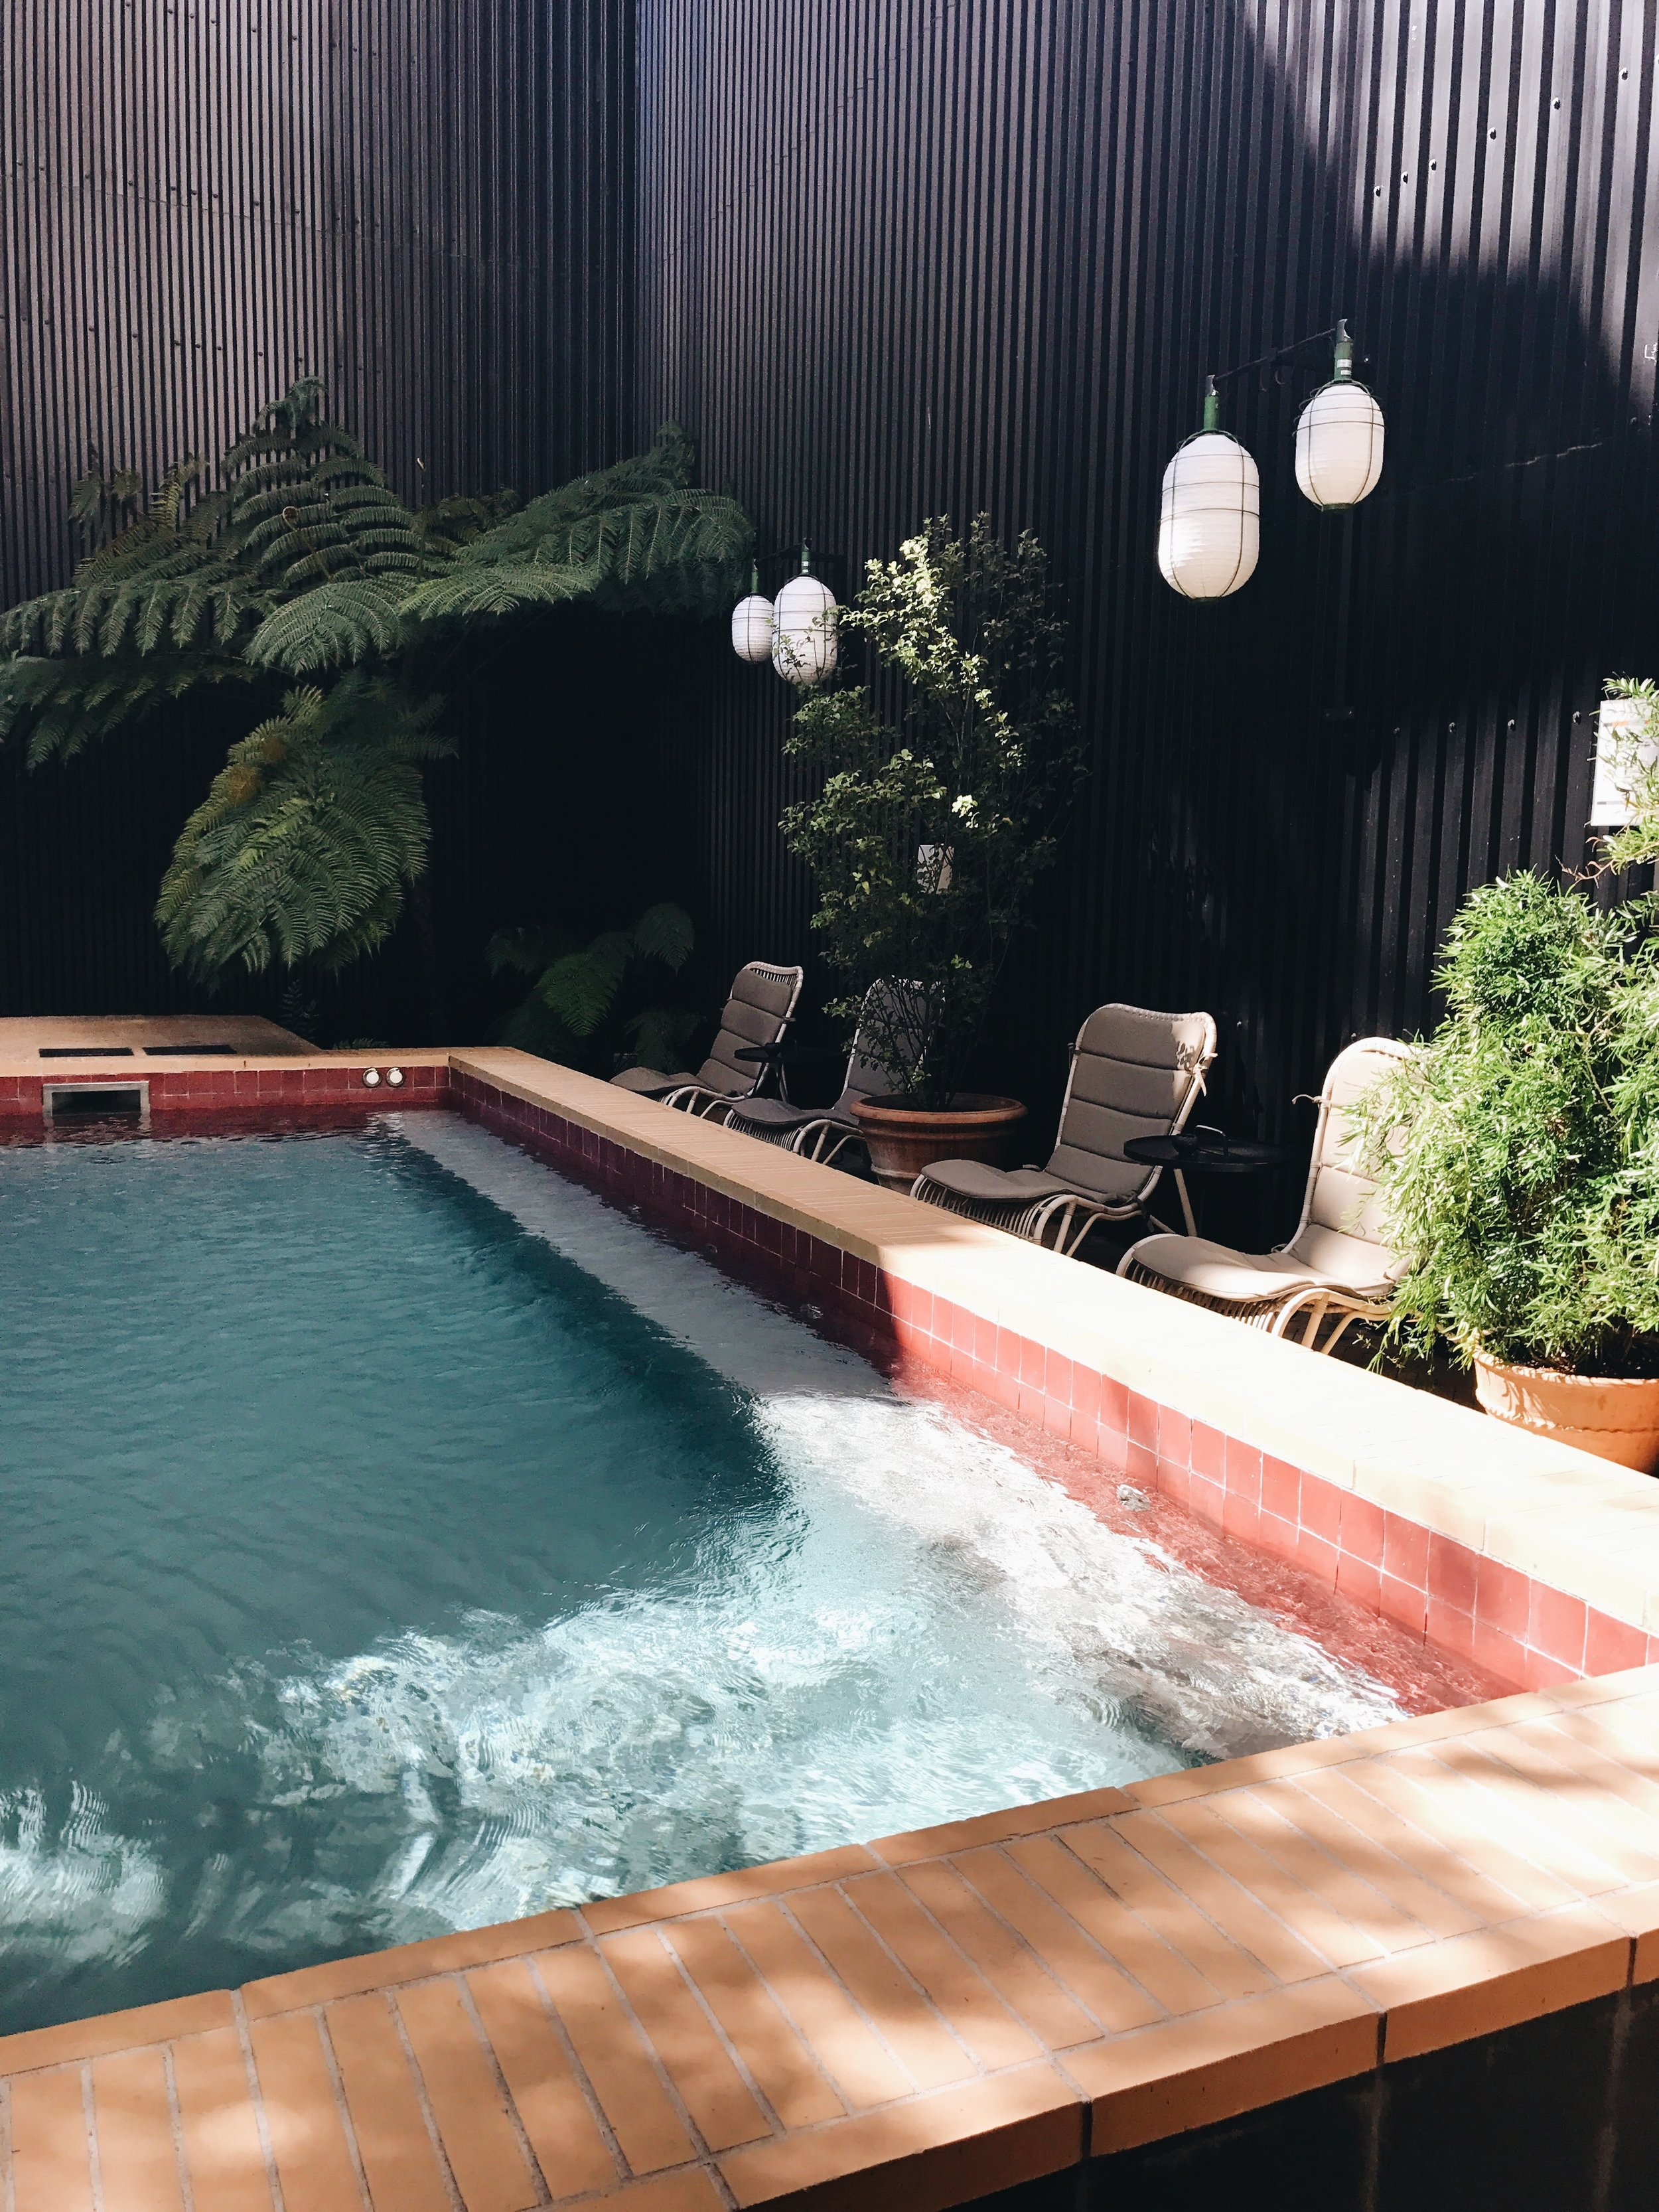 The pool at Valverde Hotel